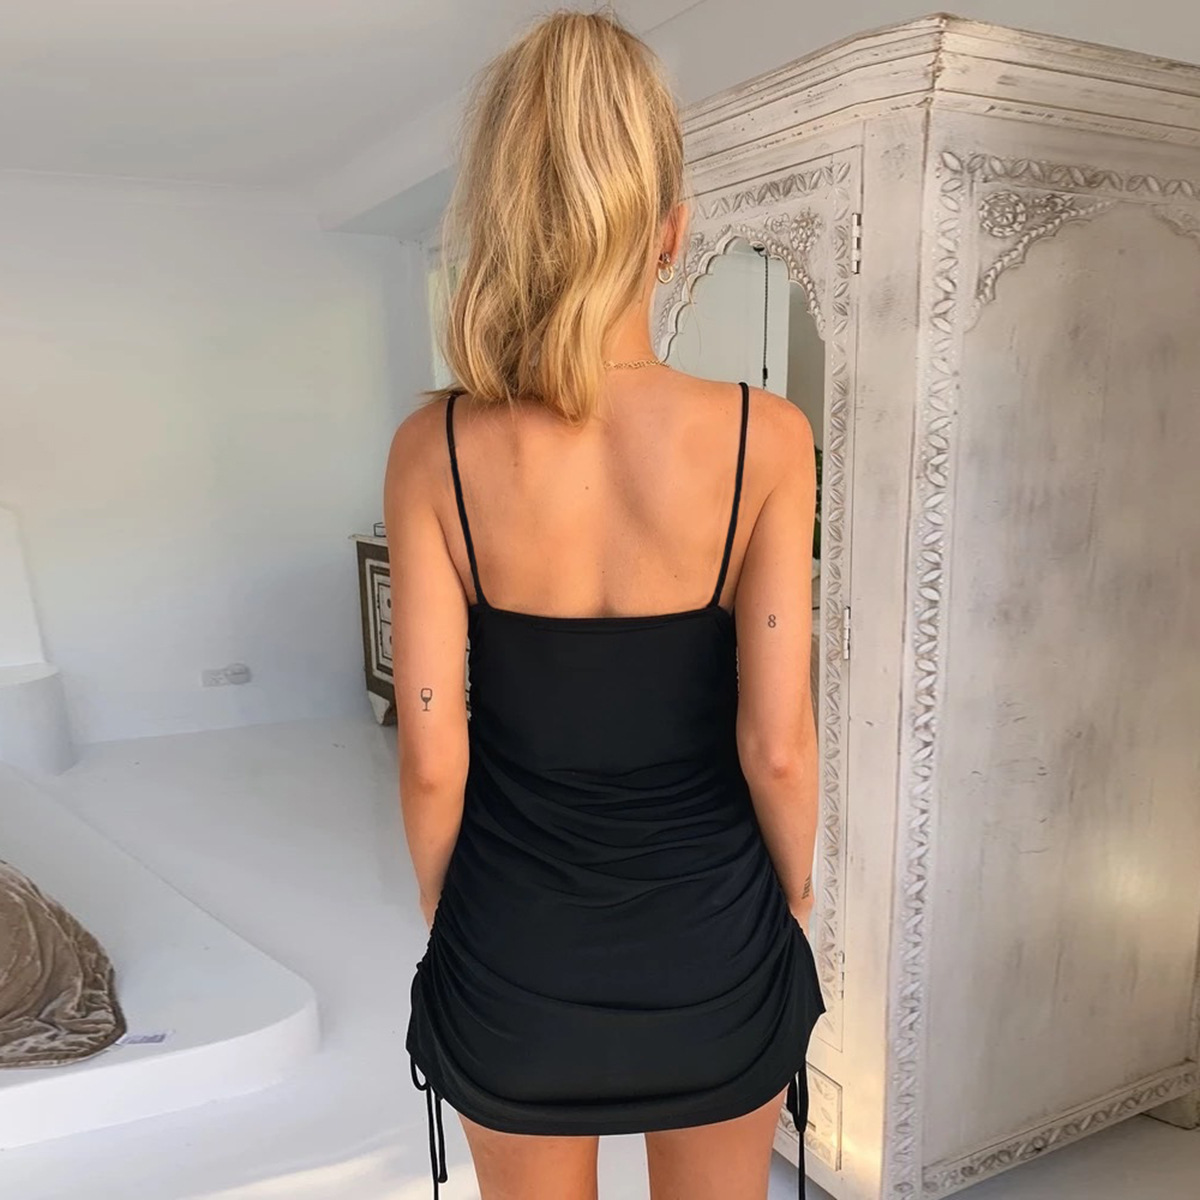 Missufe Strap Sleeveless Dress Women Autumn Ruched Bandage Dresses Woman Party Night Drawstring Mini Vestidos Red Backless Robe in Dresses from Women 39 s Clothing